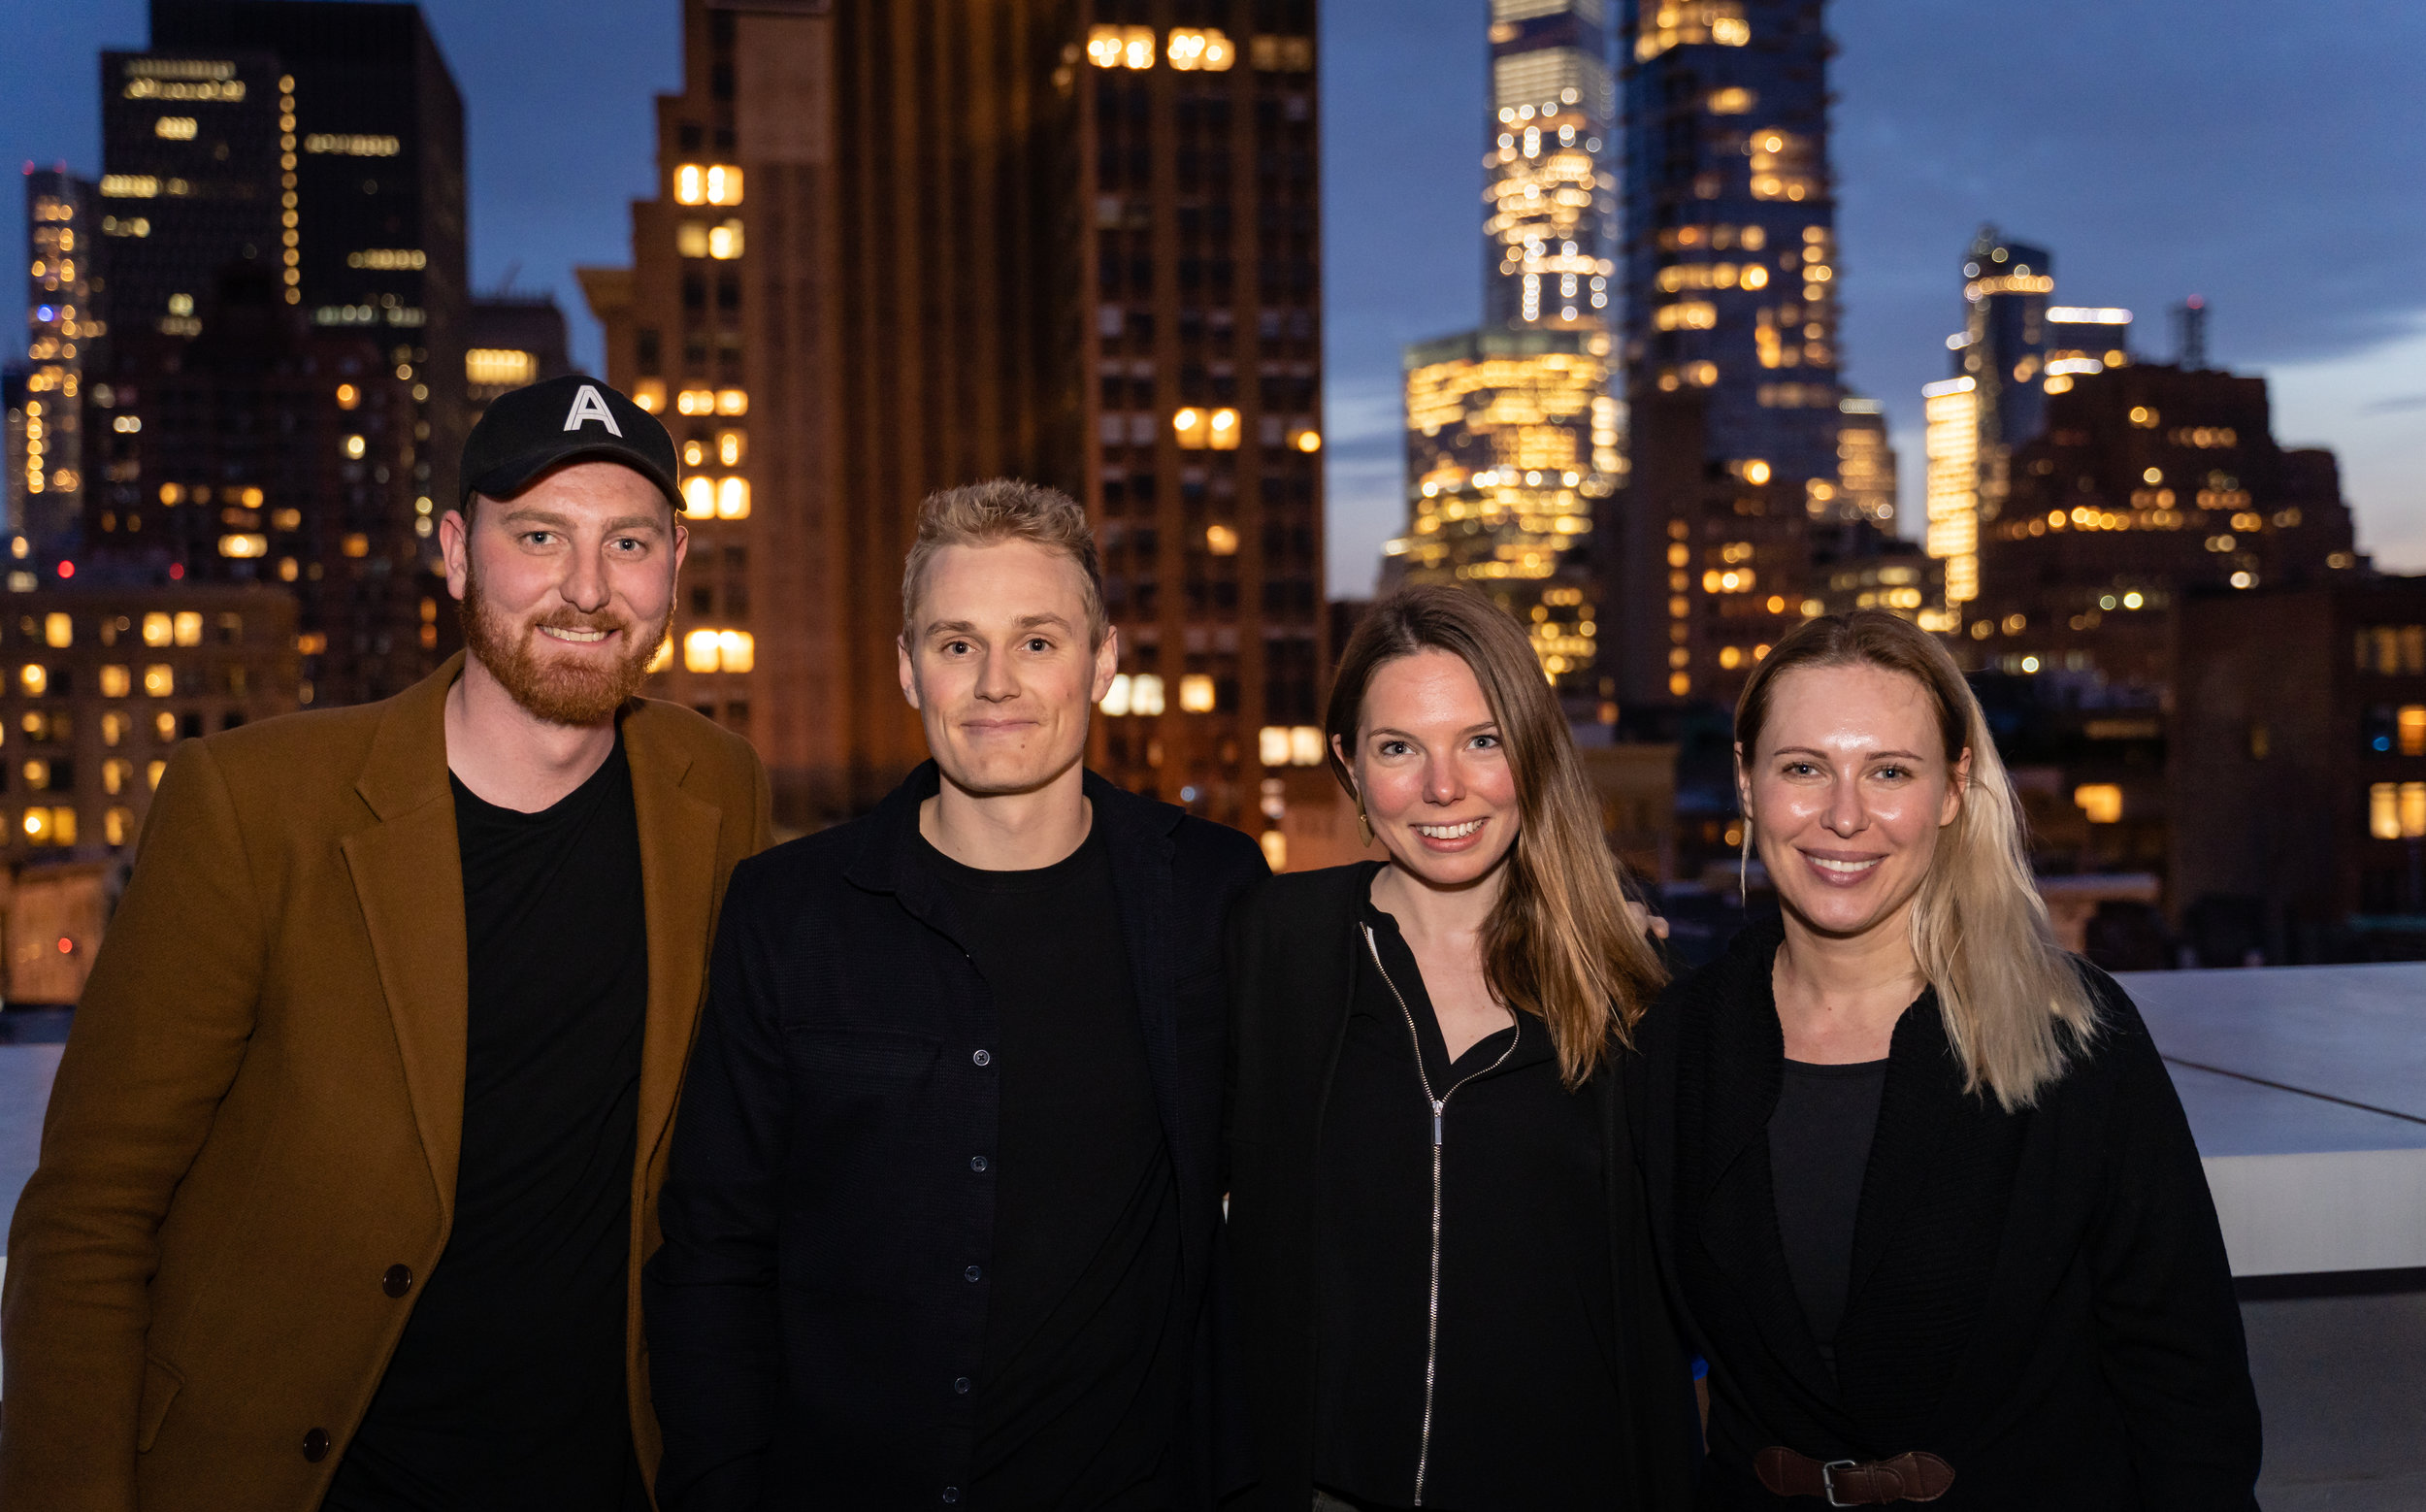 Spring 2019 Co-Founders - From left: Mikkel Steen and Anders Cederholm Nielsen, Co-Founders of Artboost, Susanne Klepsch, Co-Founder of DerButton, and Kathrin Hamm, Founder of Bearaby